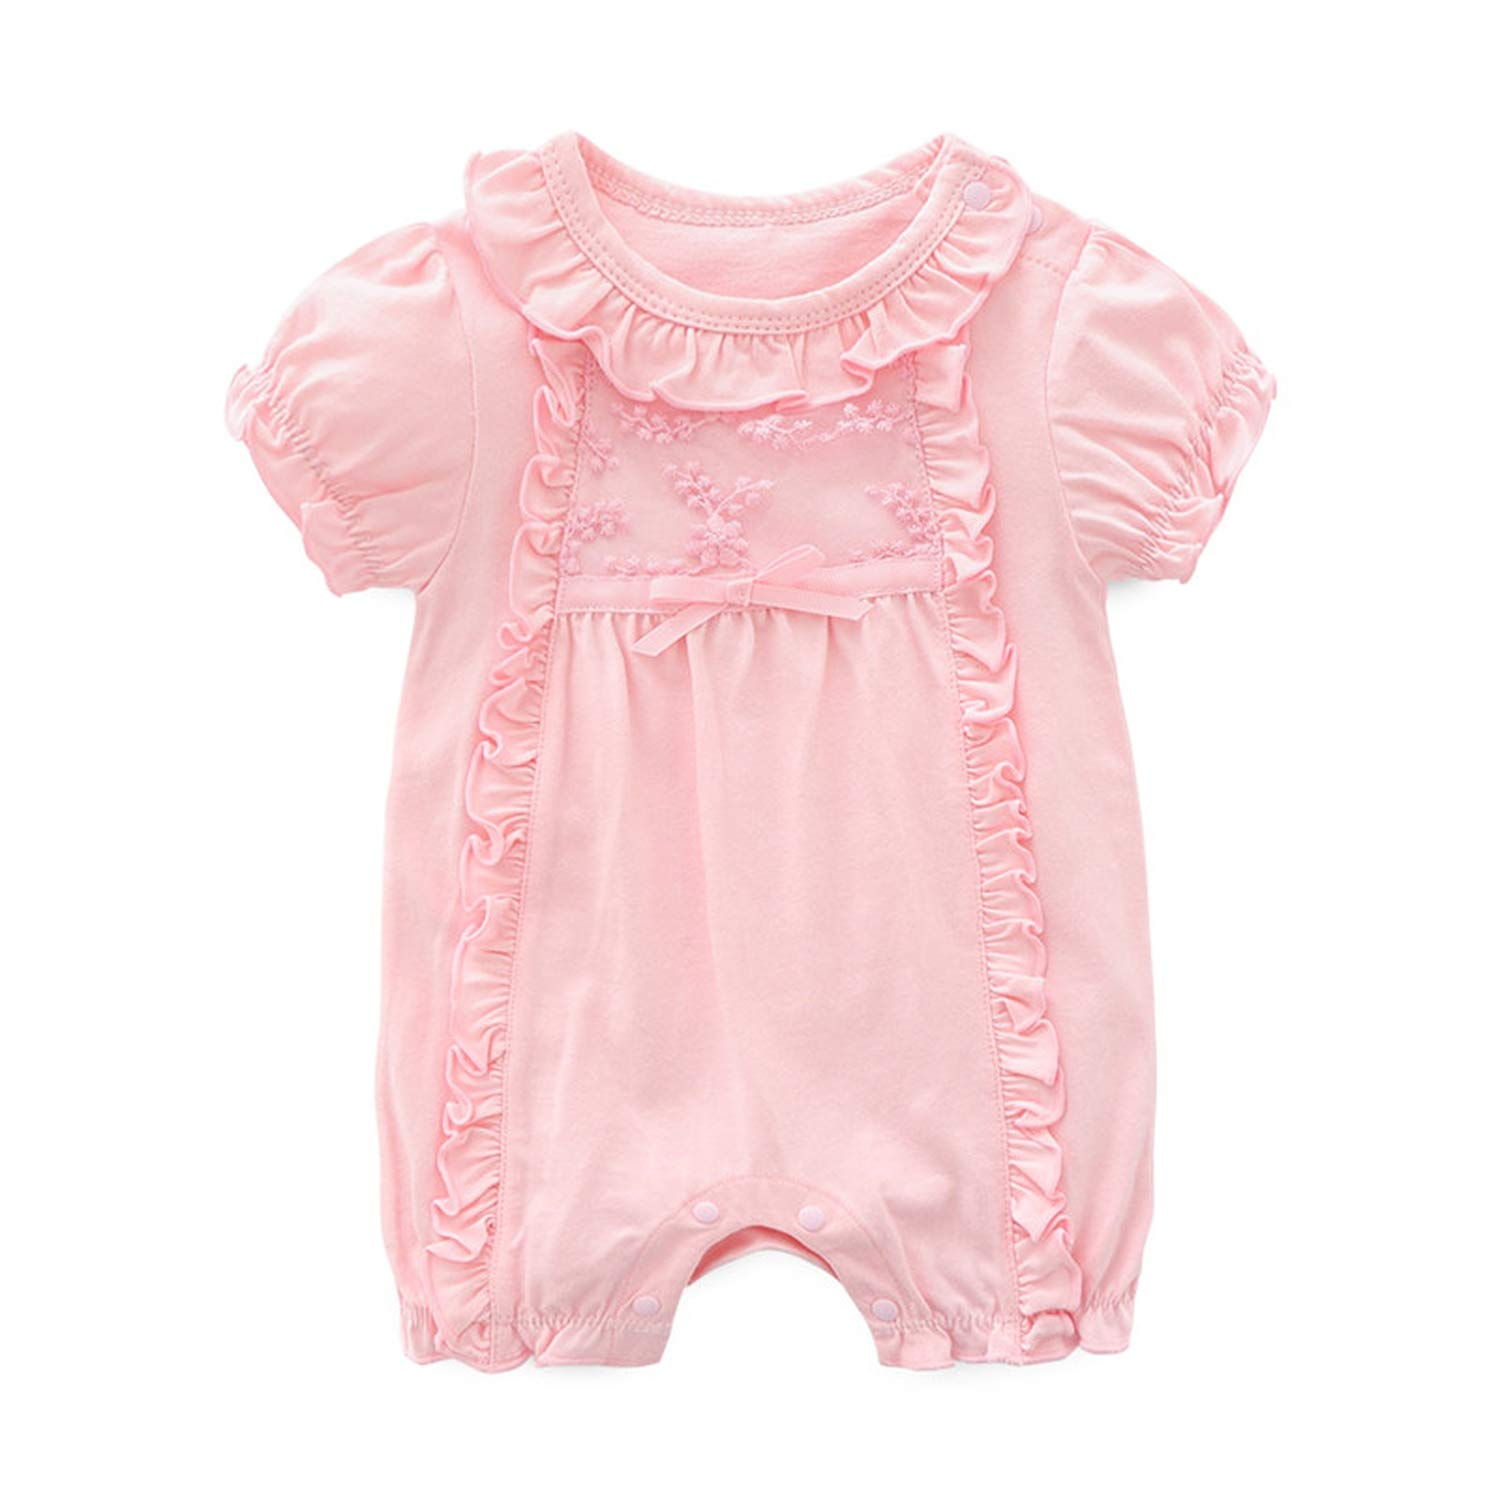 Newborn Baby Girl Clothes Lace Flowers Jumpsuits /& Hats Clothing Sets Princess Girls Footies for Spring Baby Body Suits